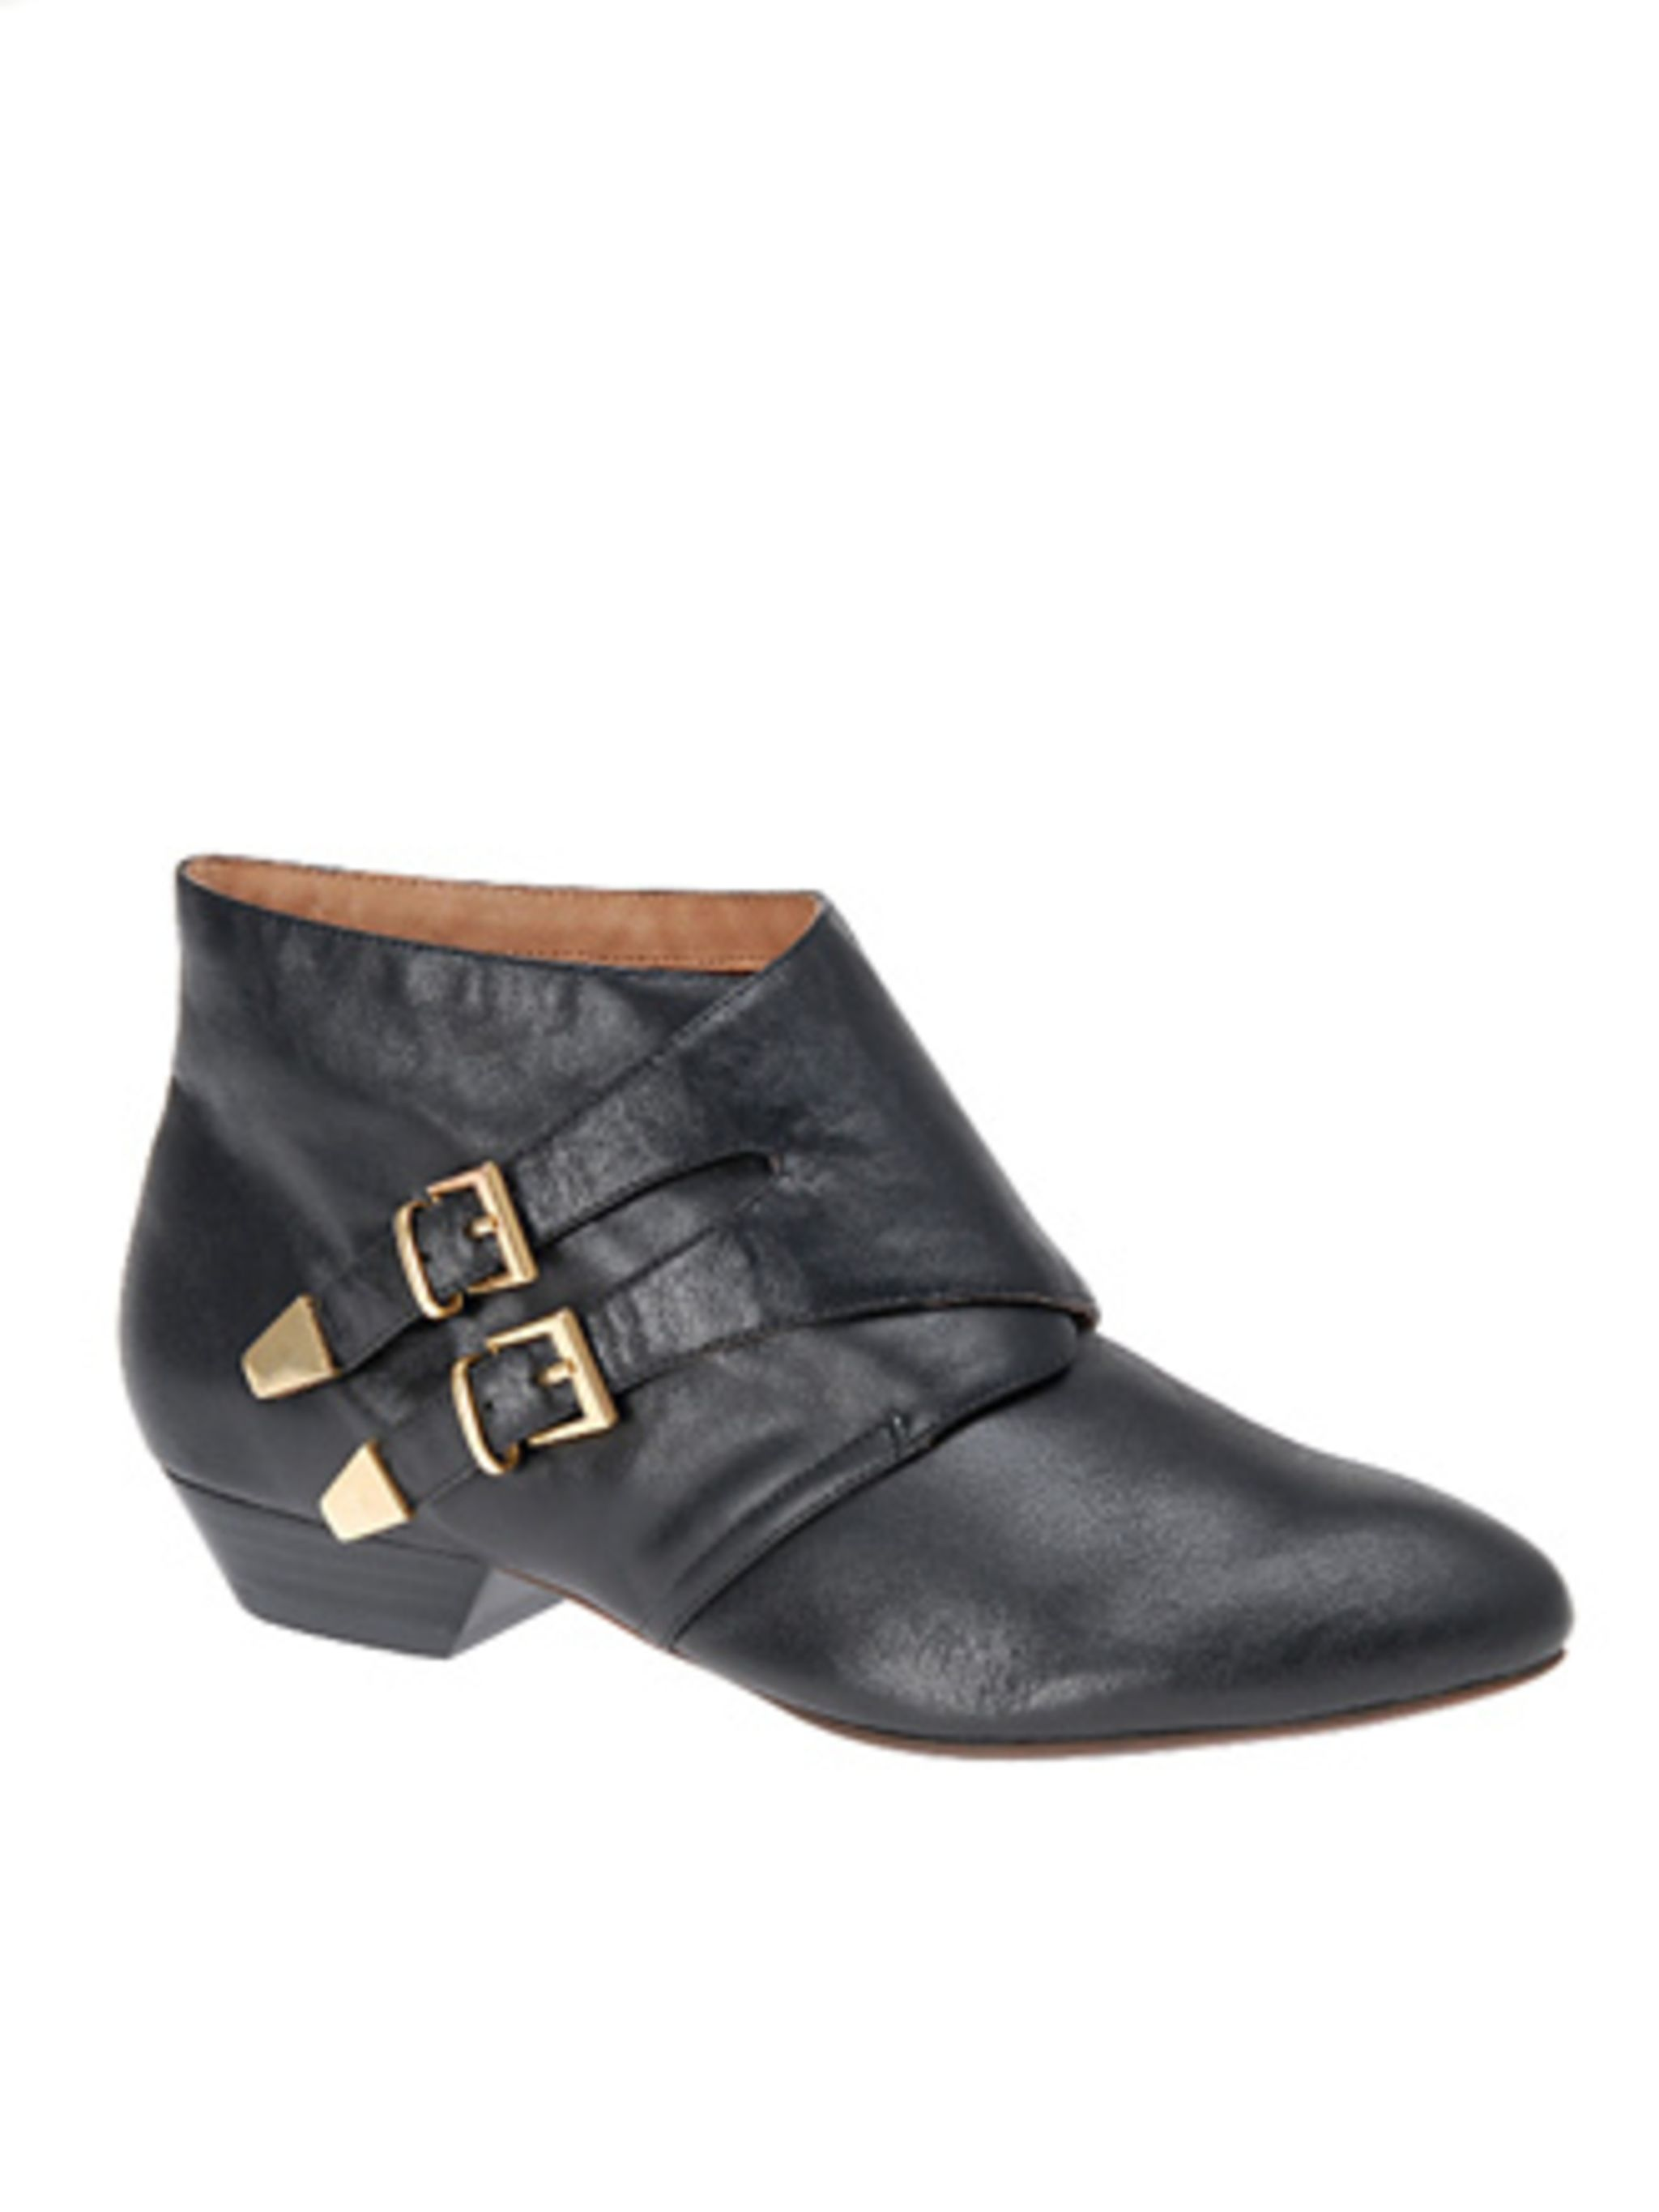 """<p>Face it, spring/summer is unlikely to be a scorcher. These boots will add instant cool points to jeans, leggings and tea dresses for months to come.</p><p>Boots, £80 by <a href=""""http://www.aldoshoes.com/uk/women/shoes/flats/77445227-alvira/97"""">Aldo</a>"""